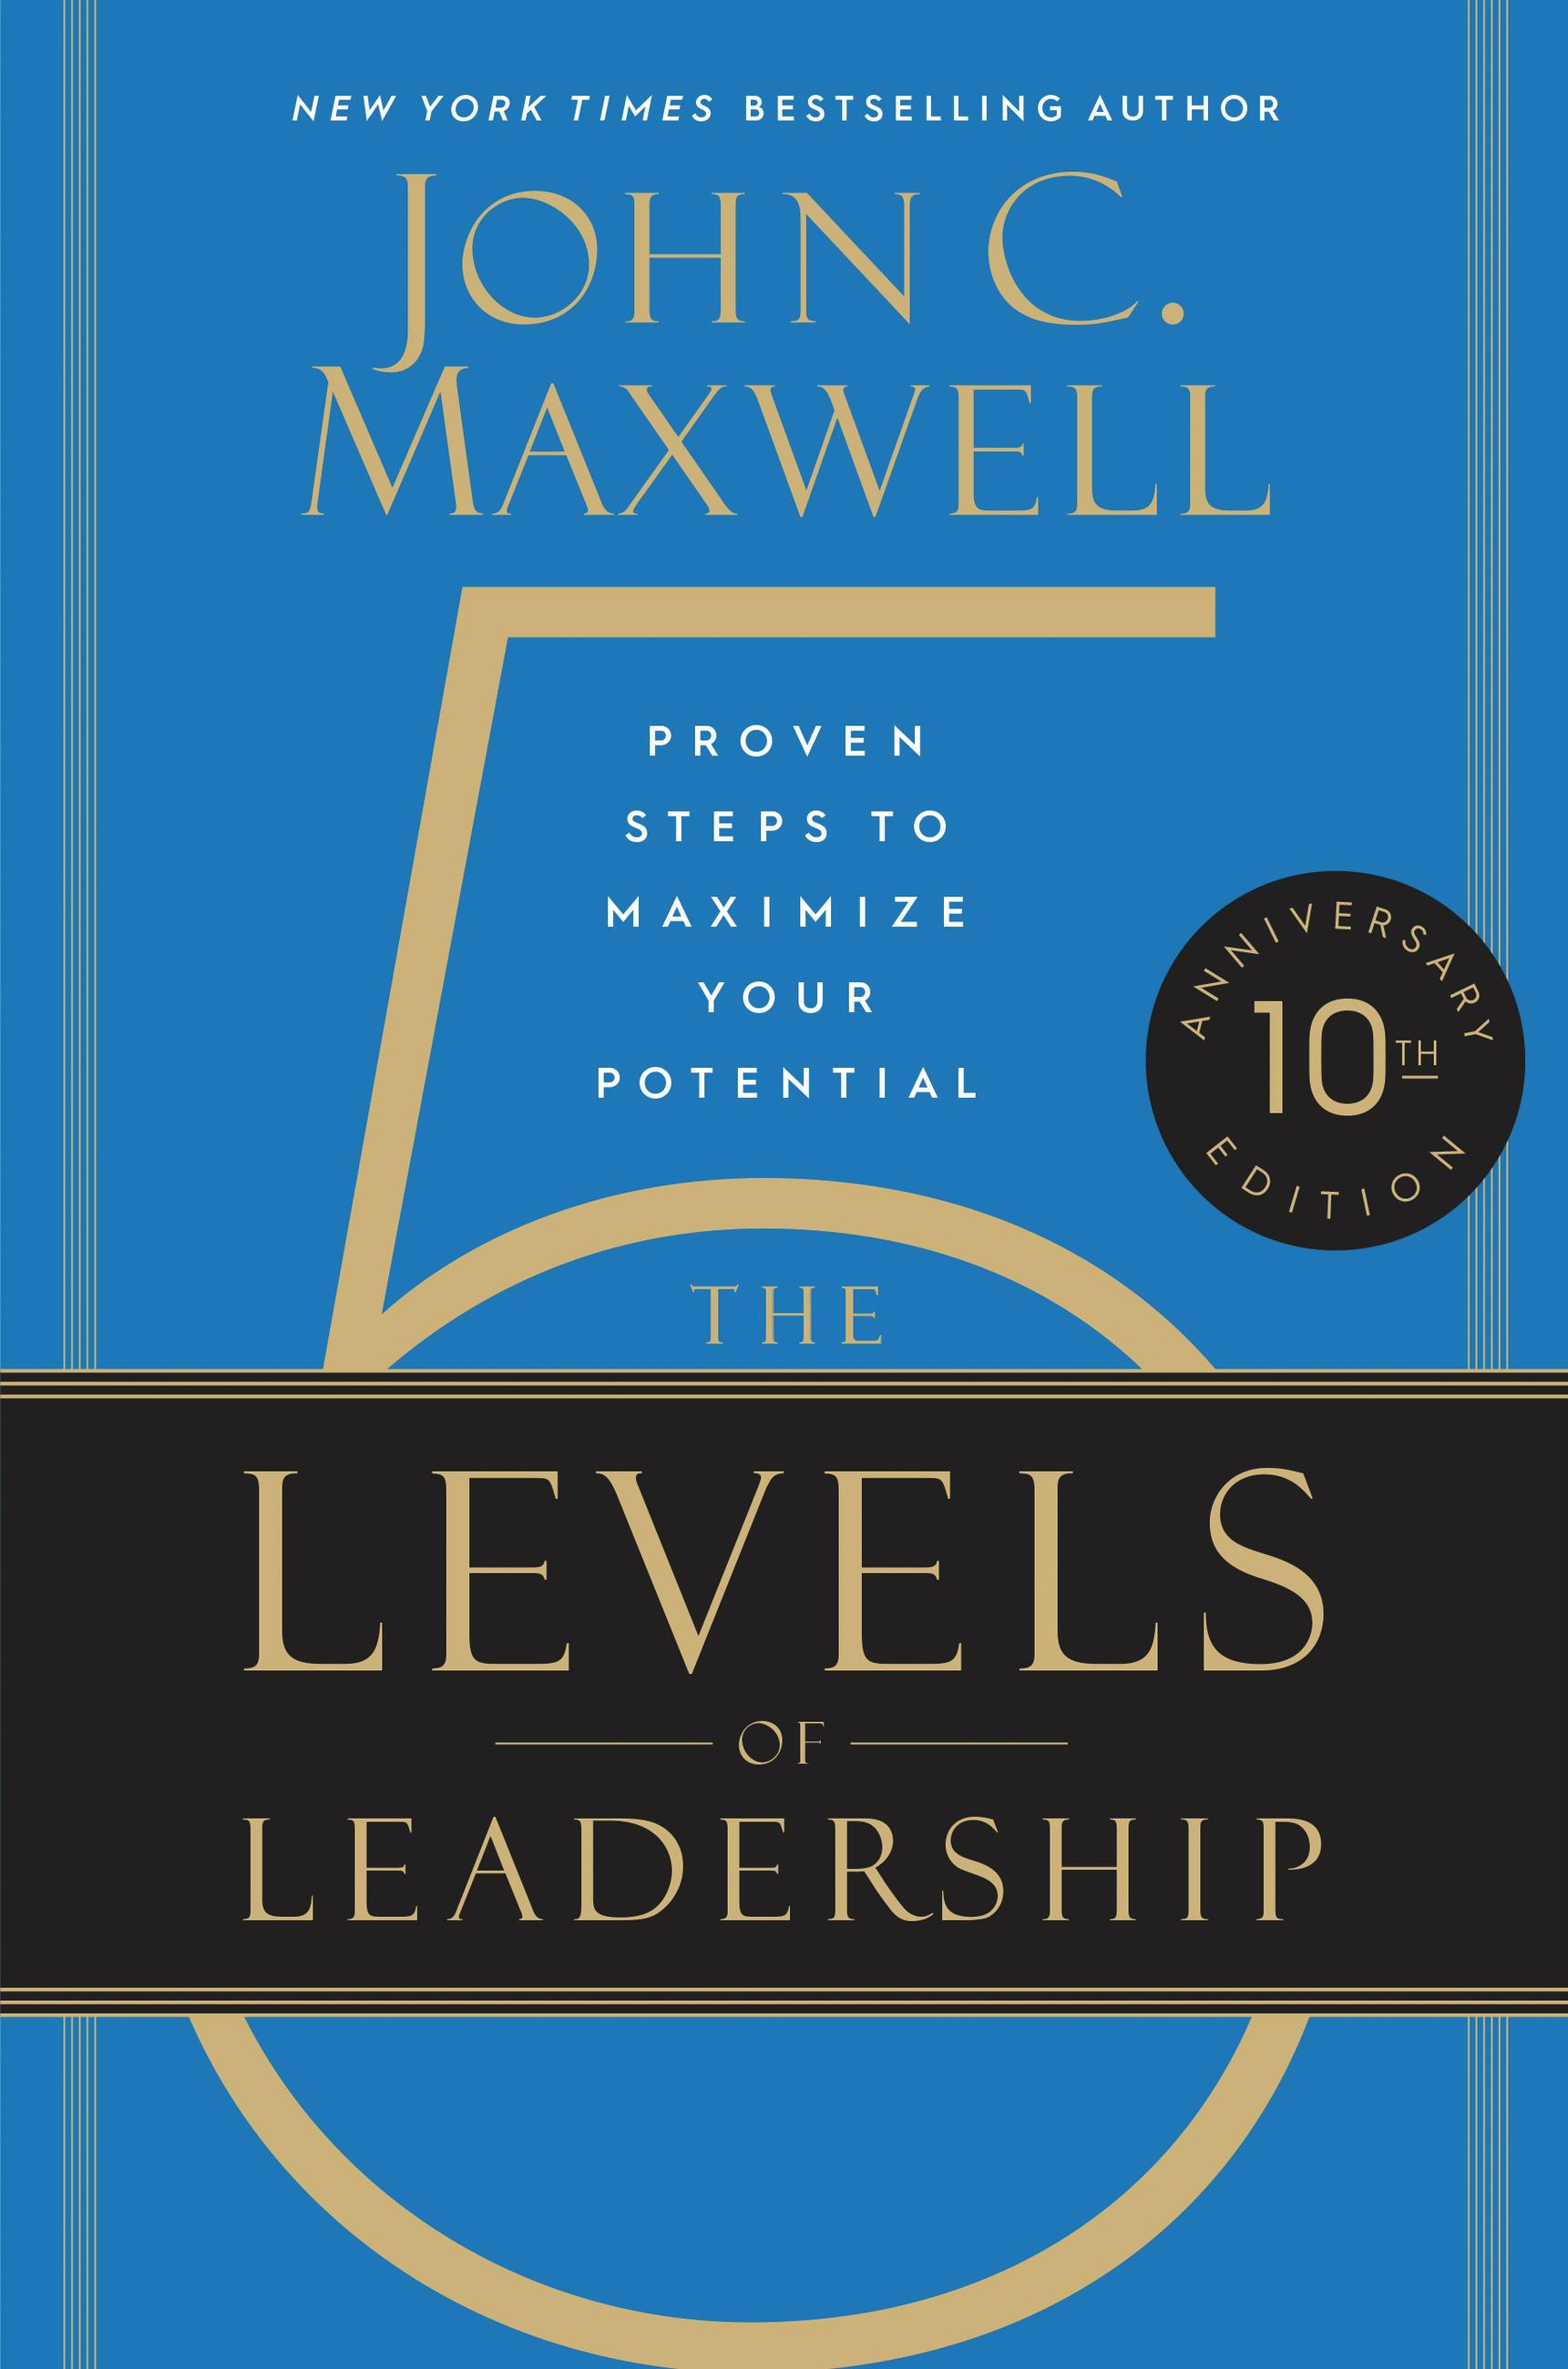 Download Ebook The 5 Levels of Leadership by John C. Maxwell Pdf